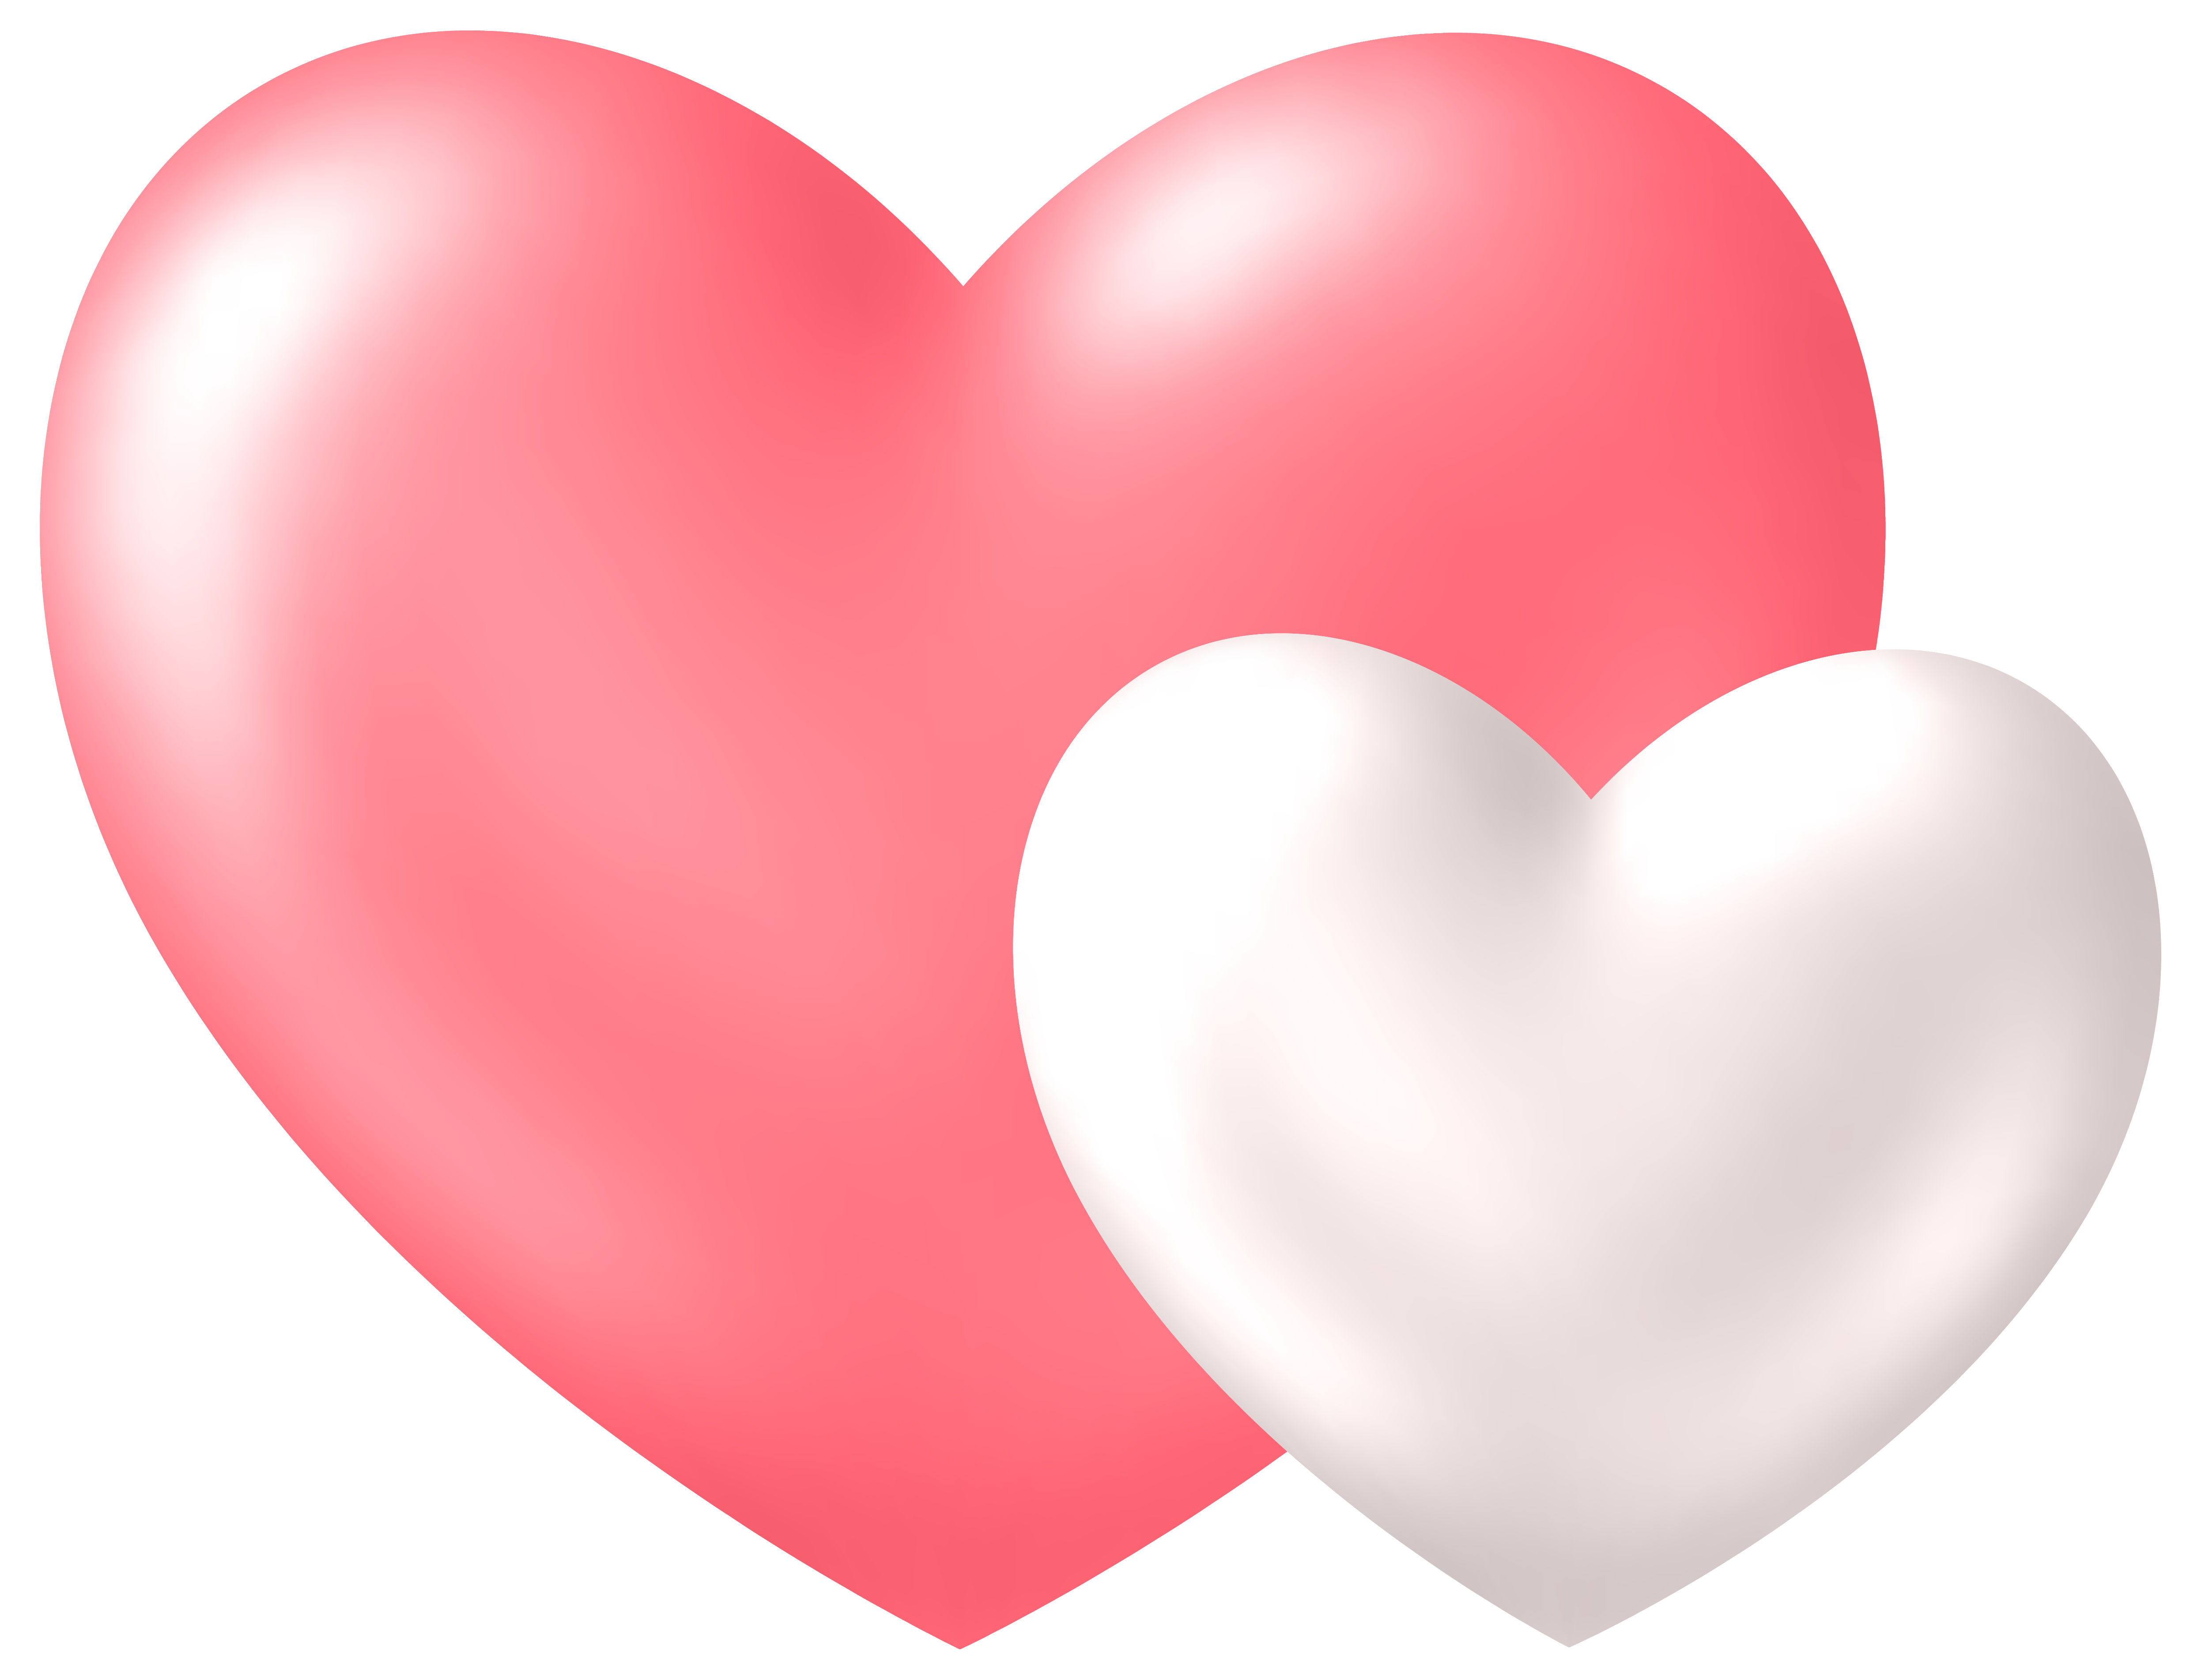 Two hearts png. Transparent clip art image